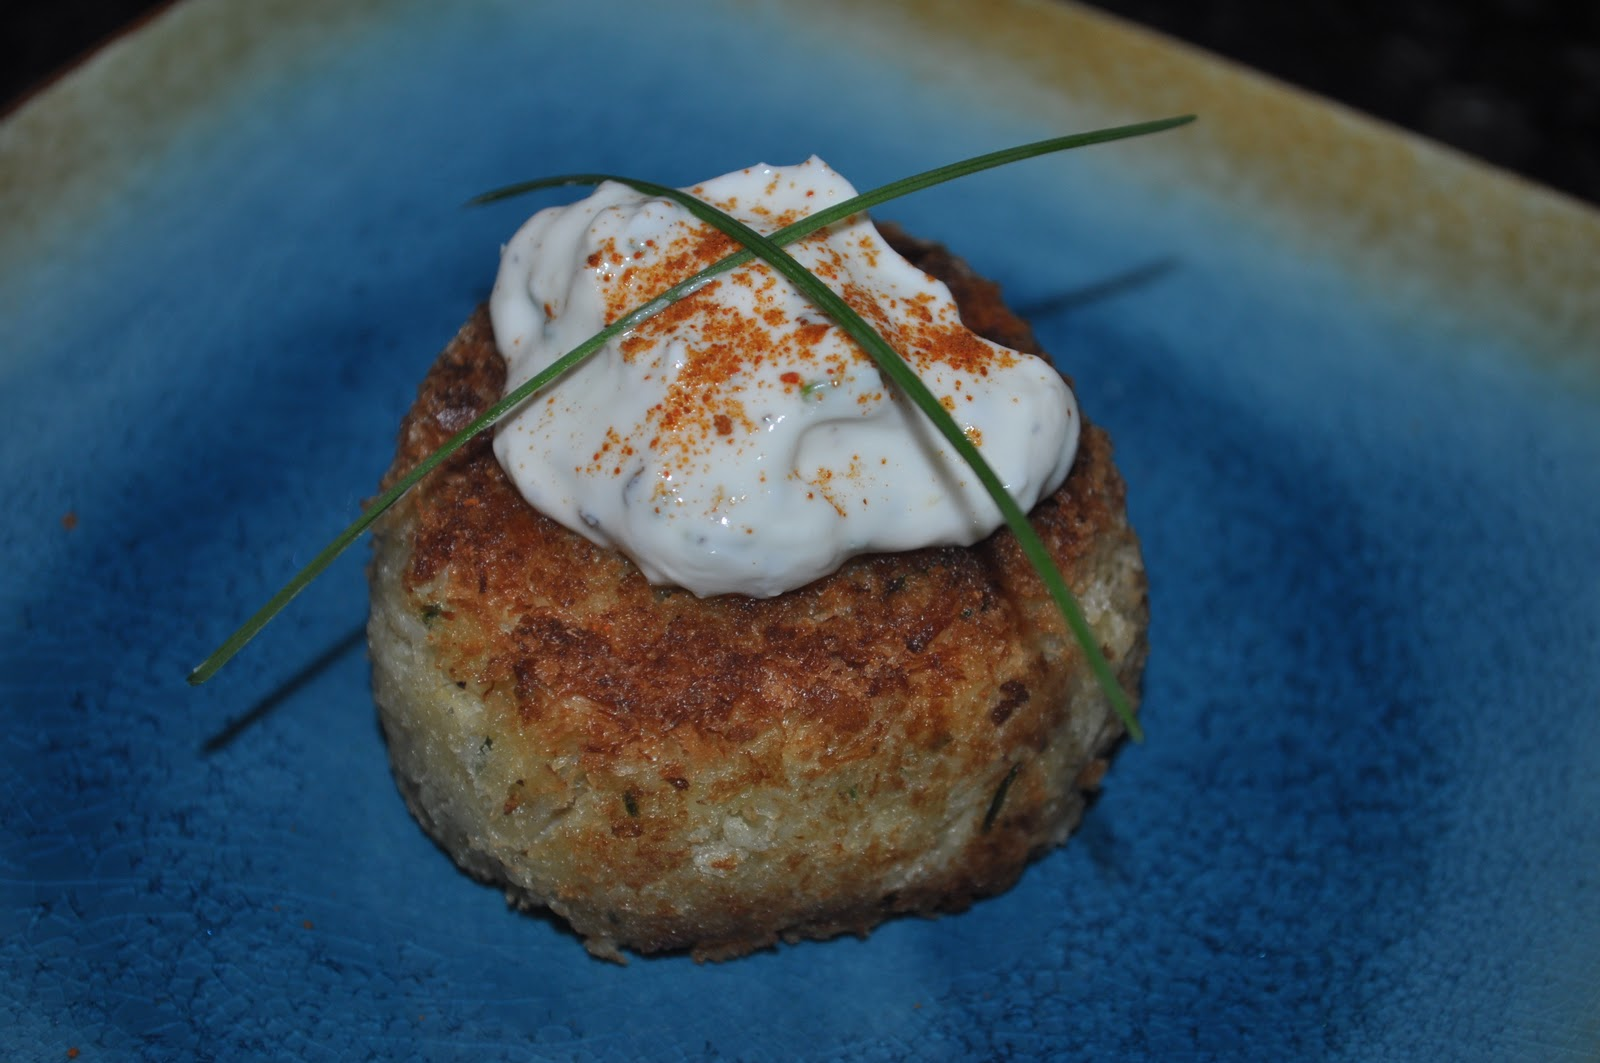 How To Heat Frozen Crab Cakes